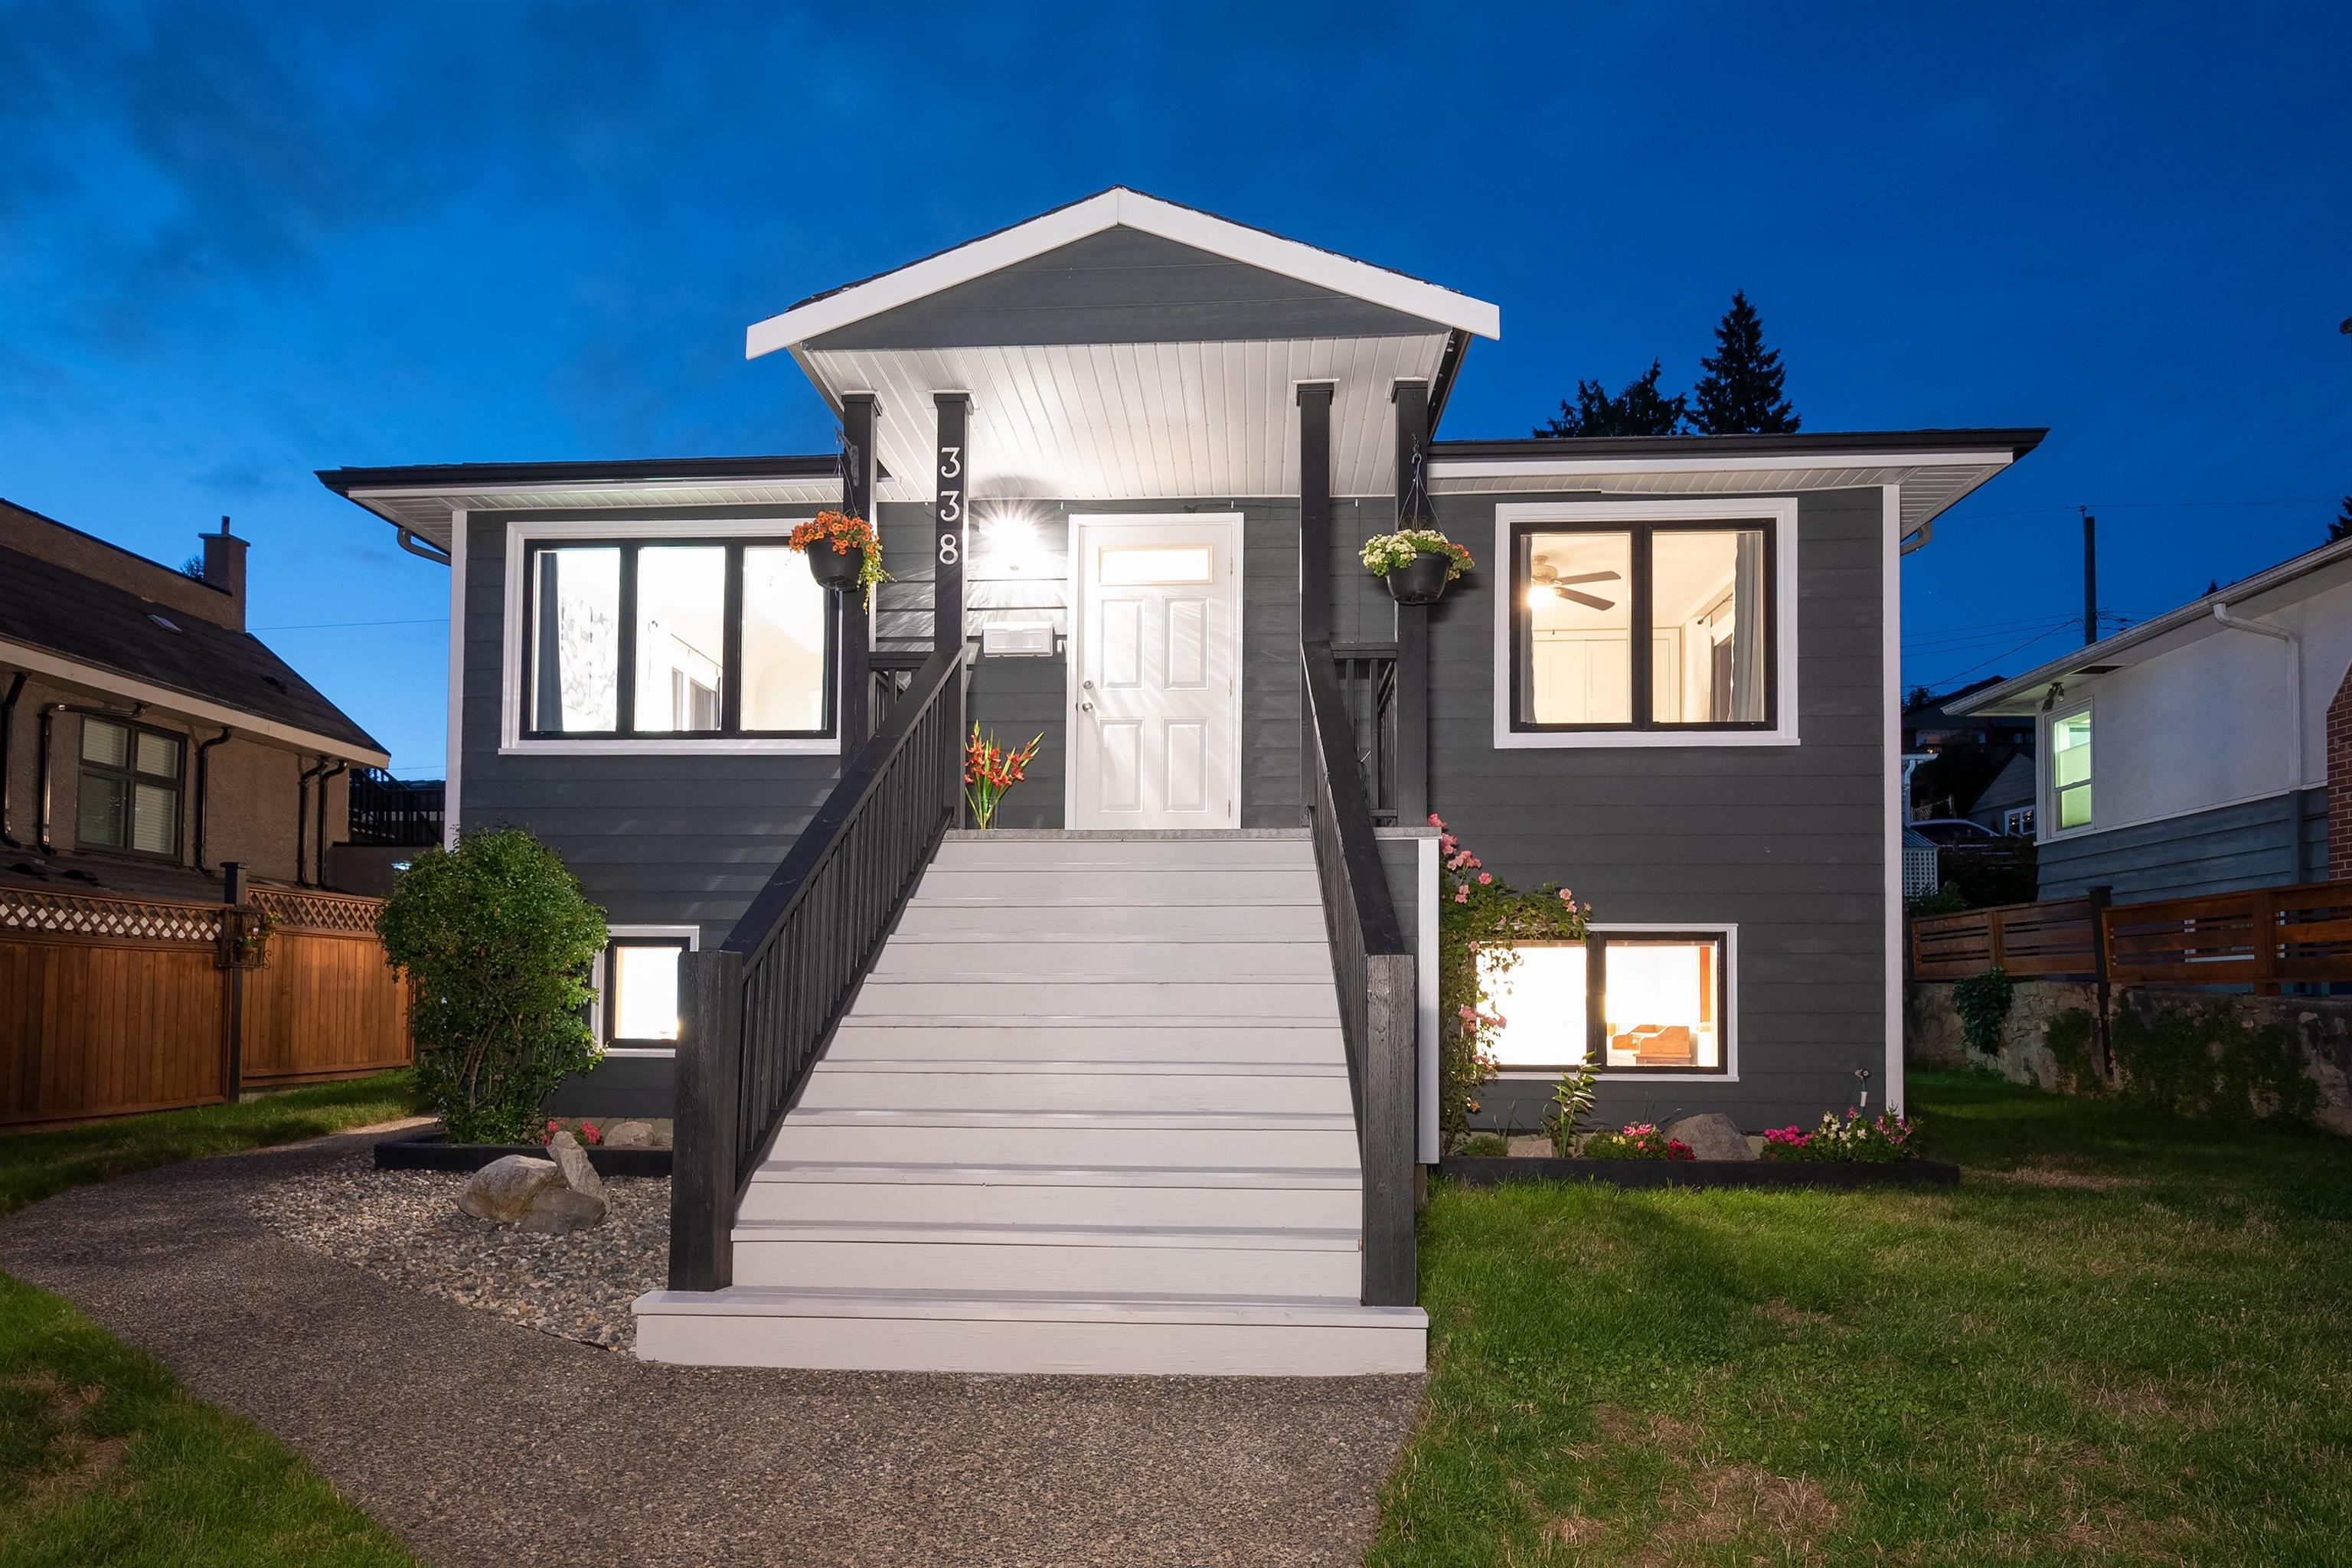 338 E 25TH STREET - Upper Lonsdale House/Single Family for sale, 4 Bedrooms (R2614581) - #1